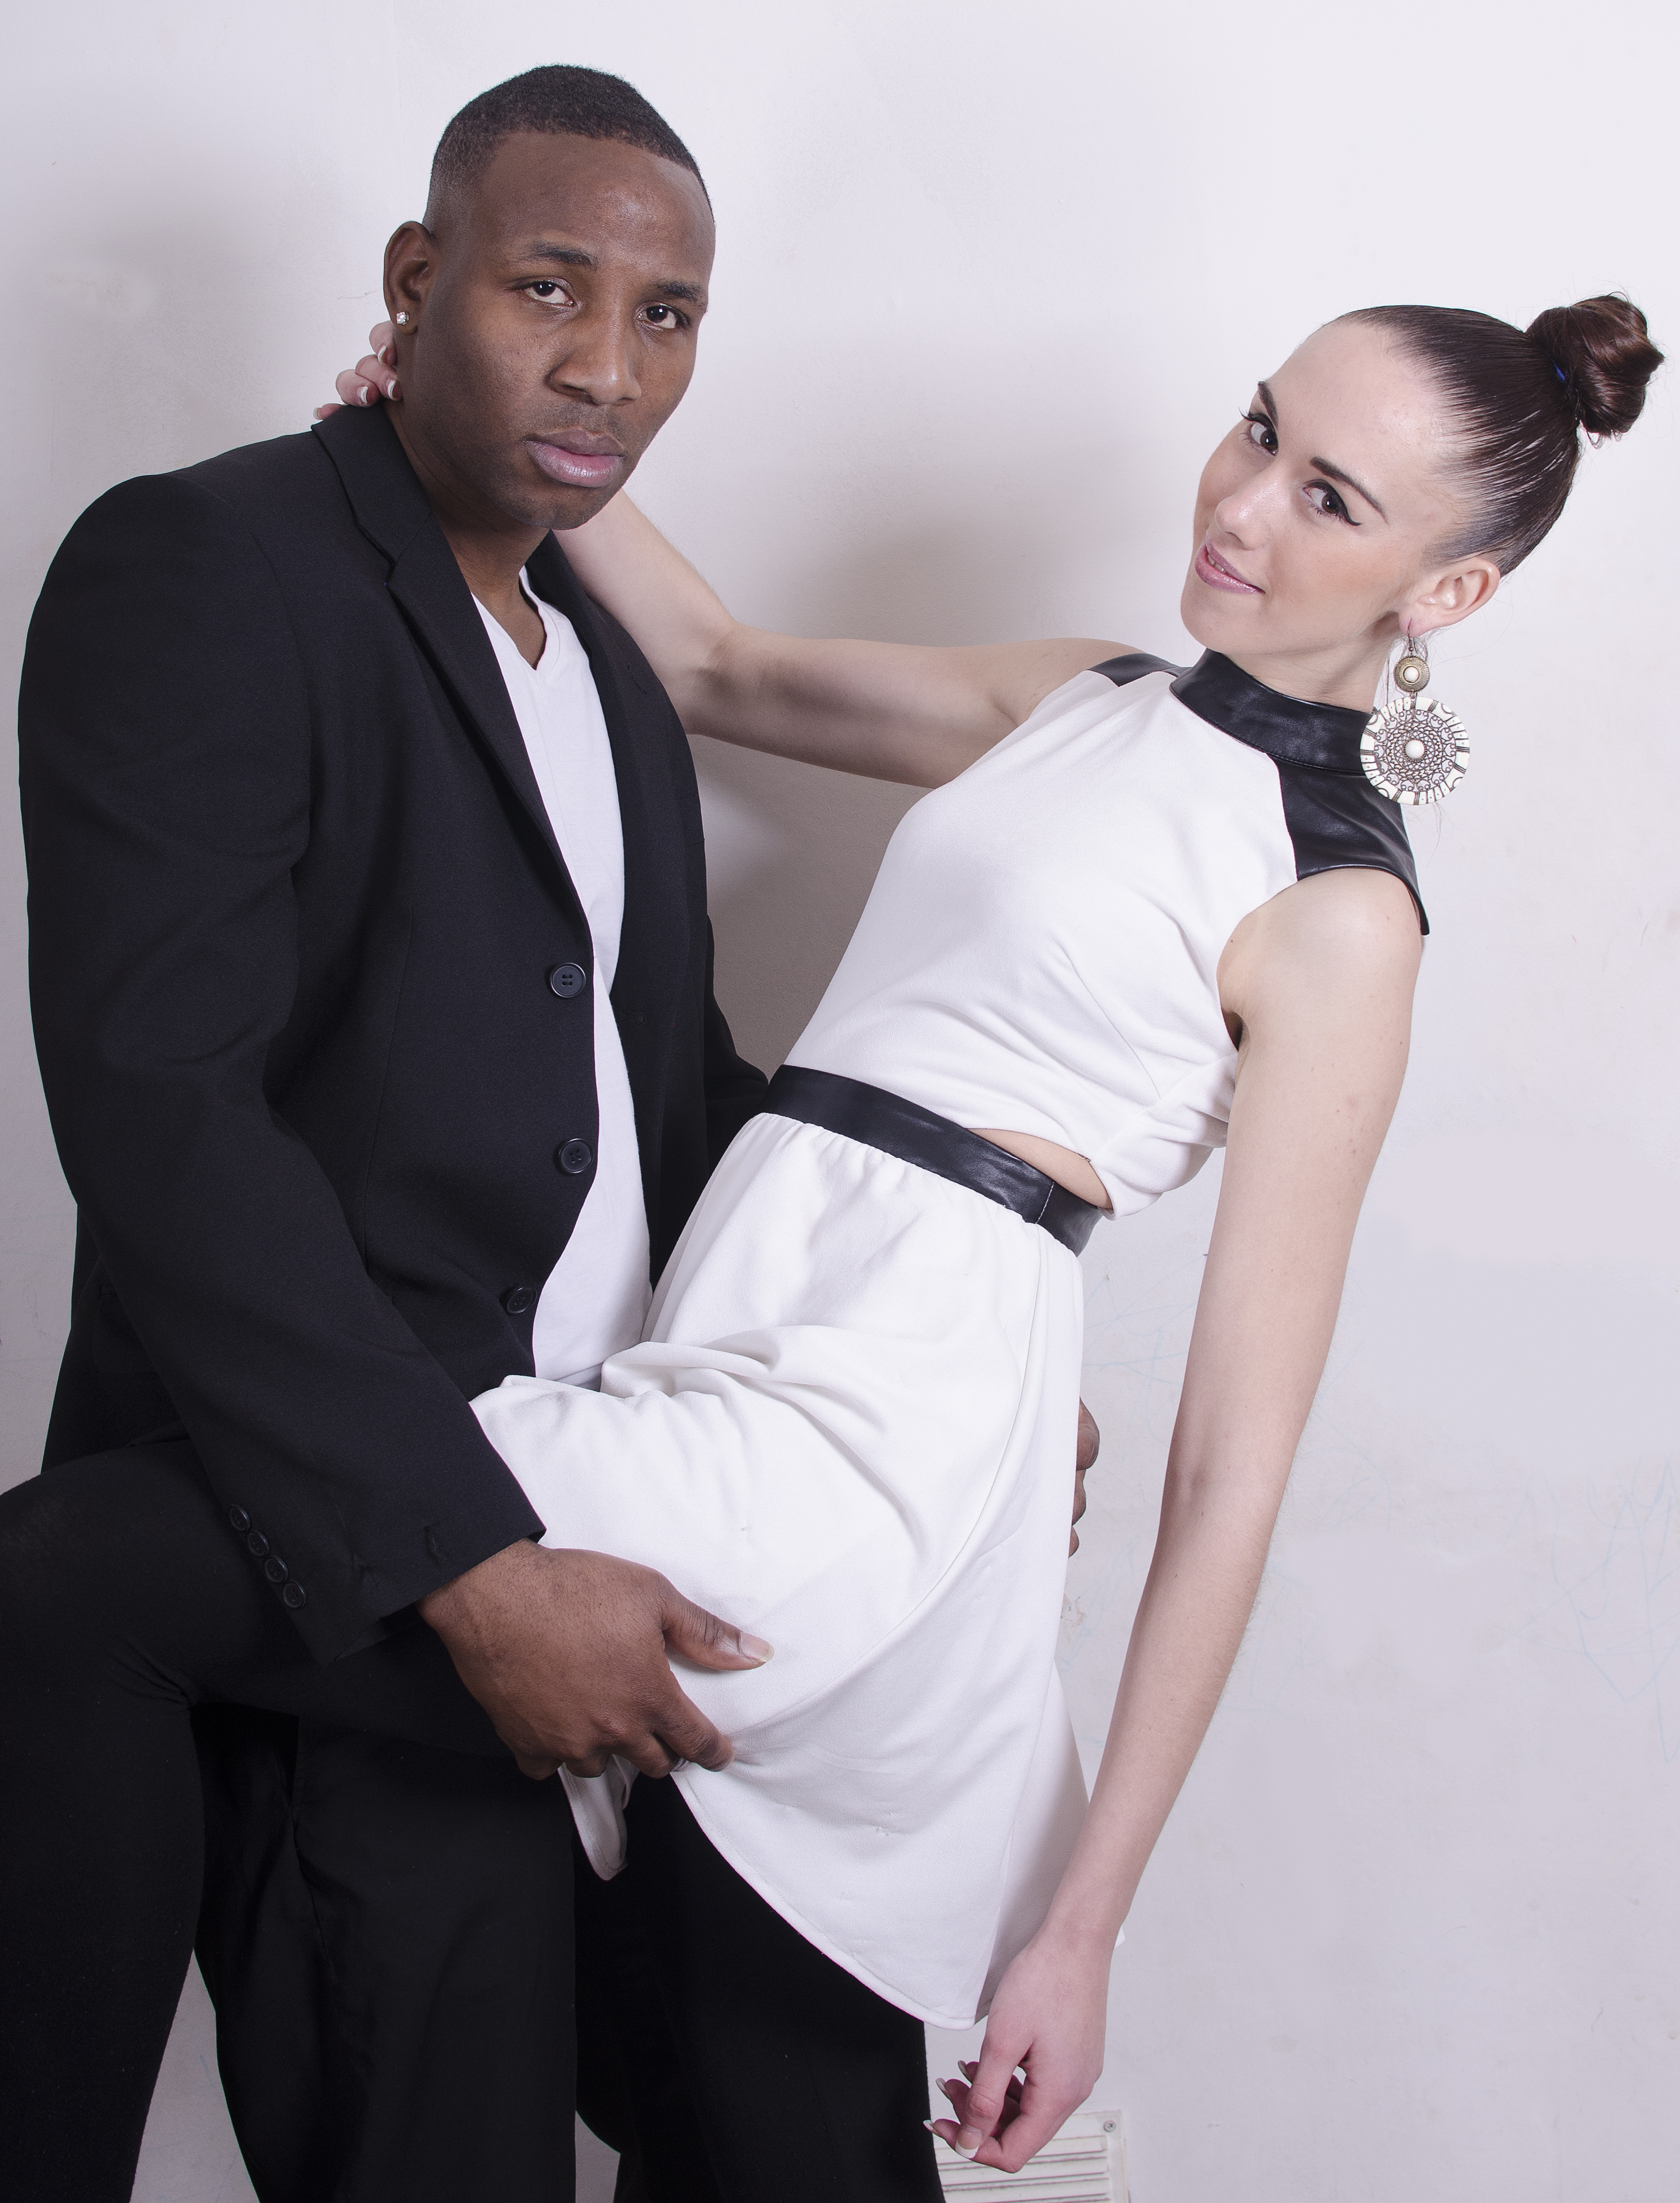 Vinroy Campbell and model partner